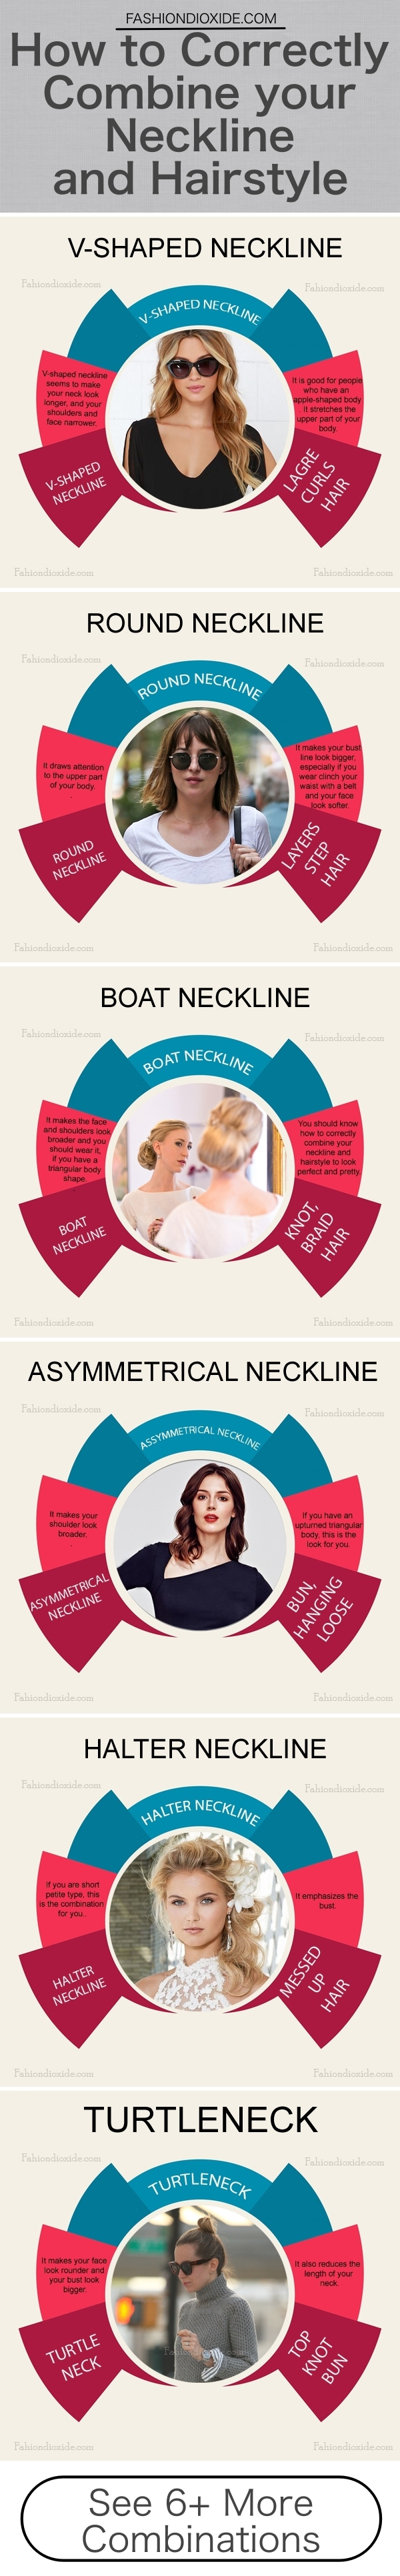 How-To-Correctly-Combine-Your-Neckline-And-Hairstyle